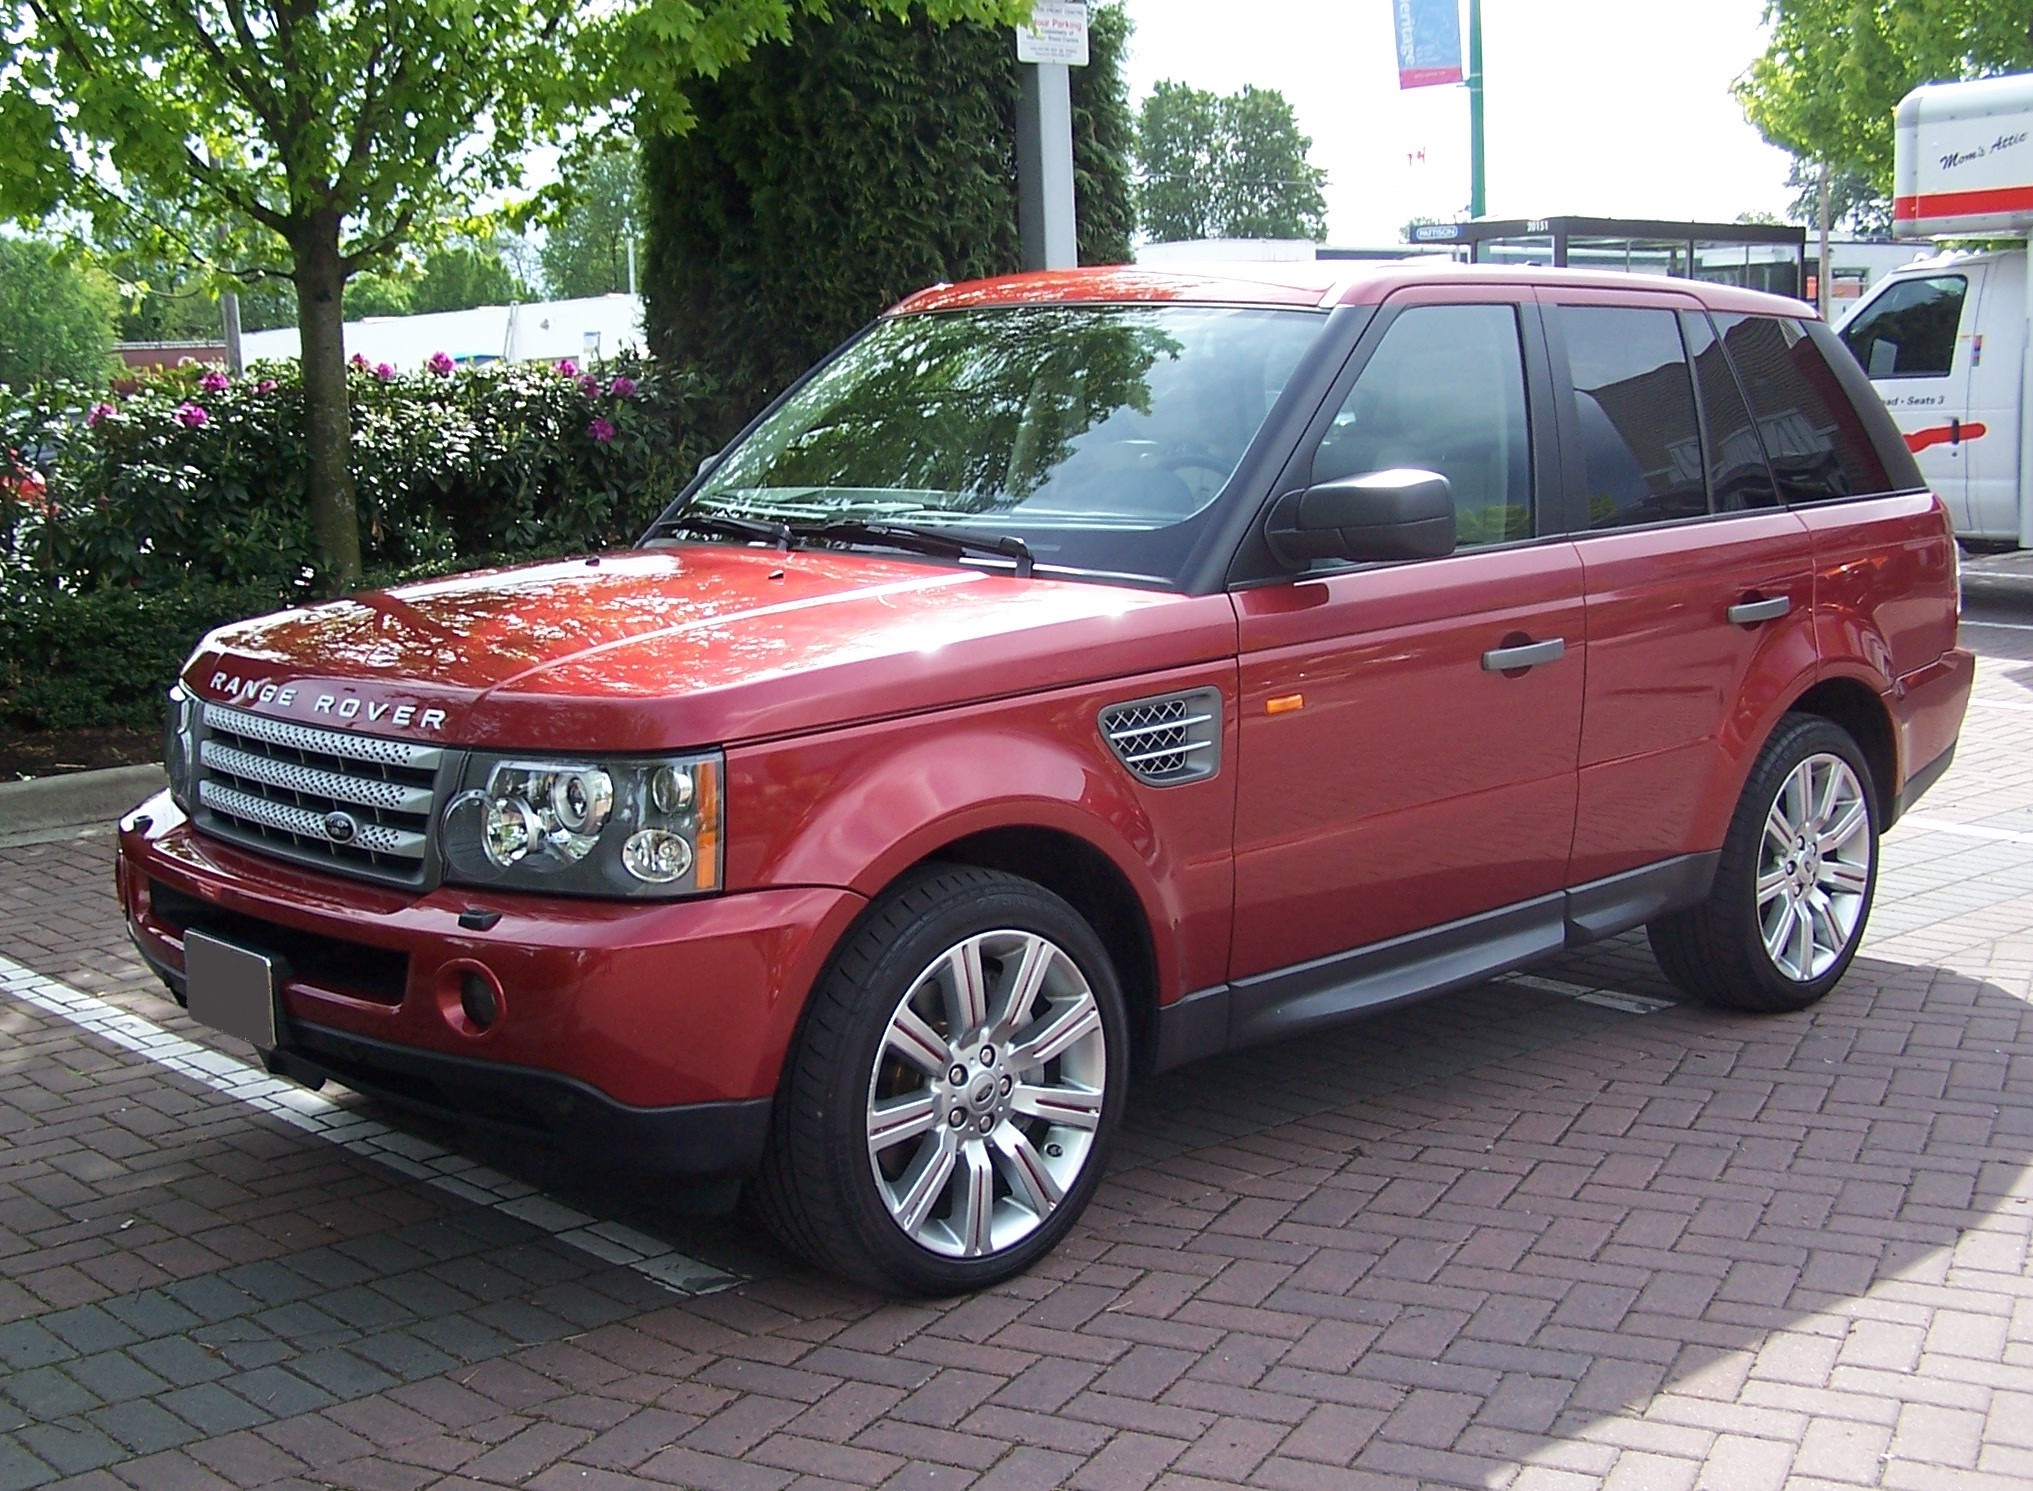 2007 range rover sport s c axis auto. Black Bedroom Furniture Sets. Home Design Ideas